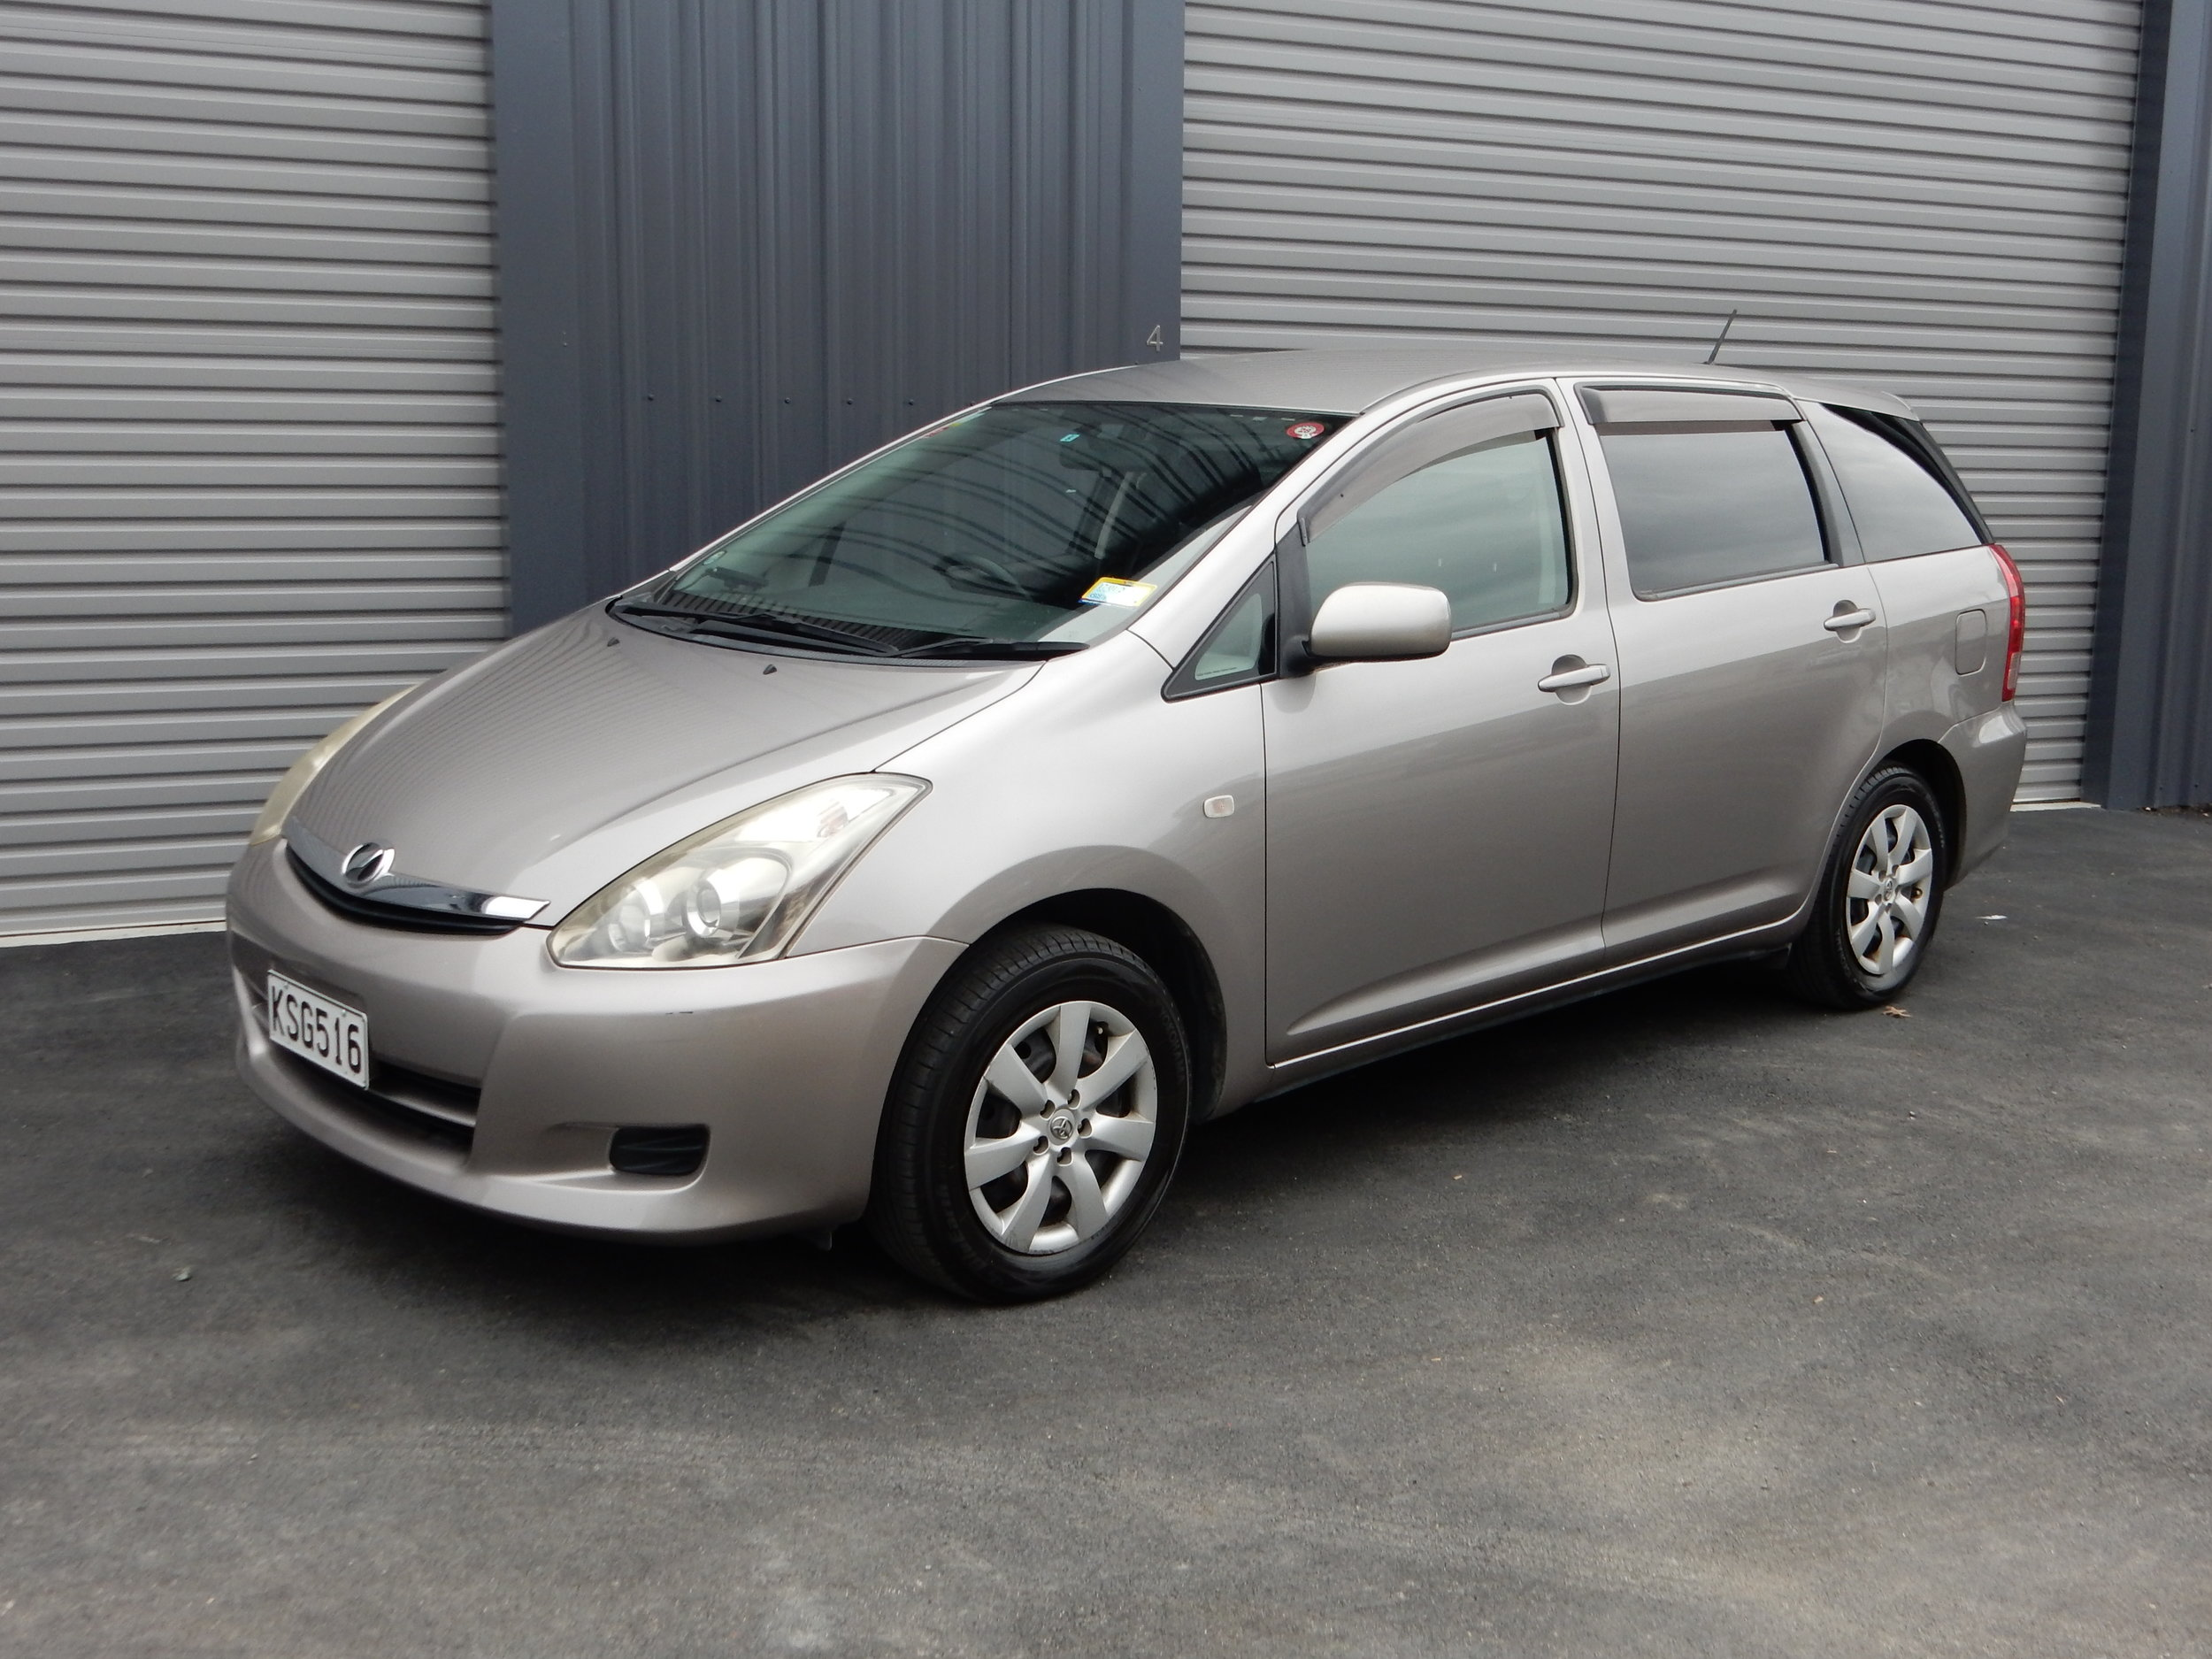 Toyota Wish Wagon - 2005 -20075 seats convert to 6-71800- 2000cc6.8L/100km60L fuel tankUnleaded fuelTwin airbagsAir conditioningAutomaticFrom $45 Per dayMinimum hire periods apply for this rate